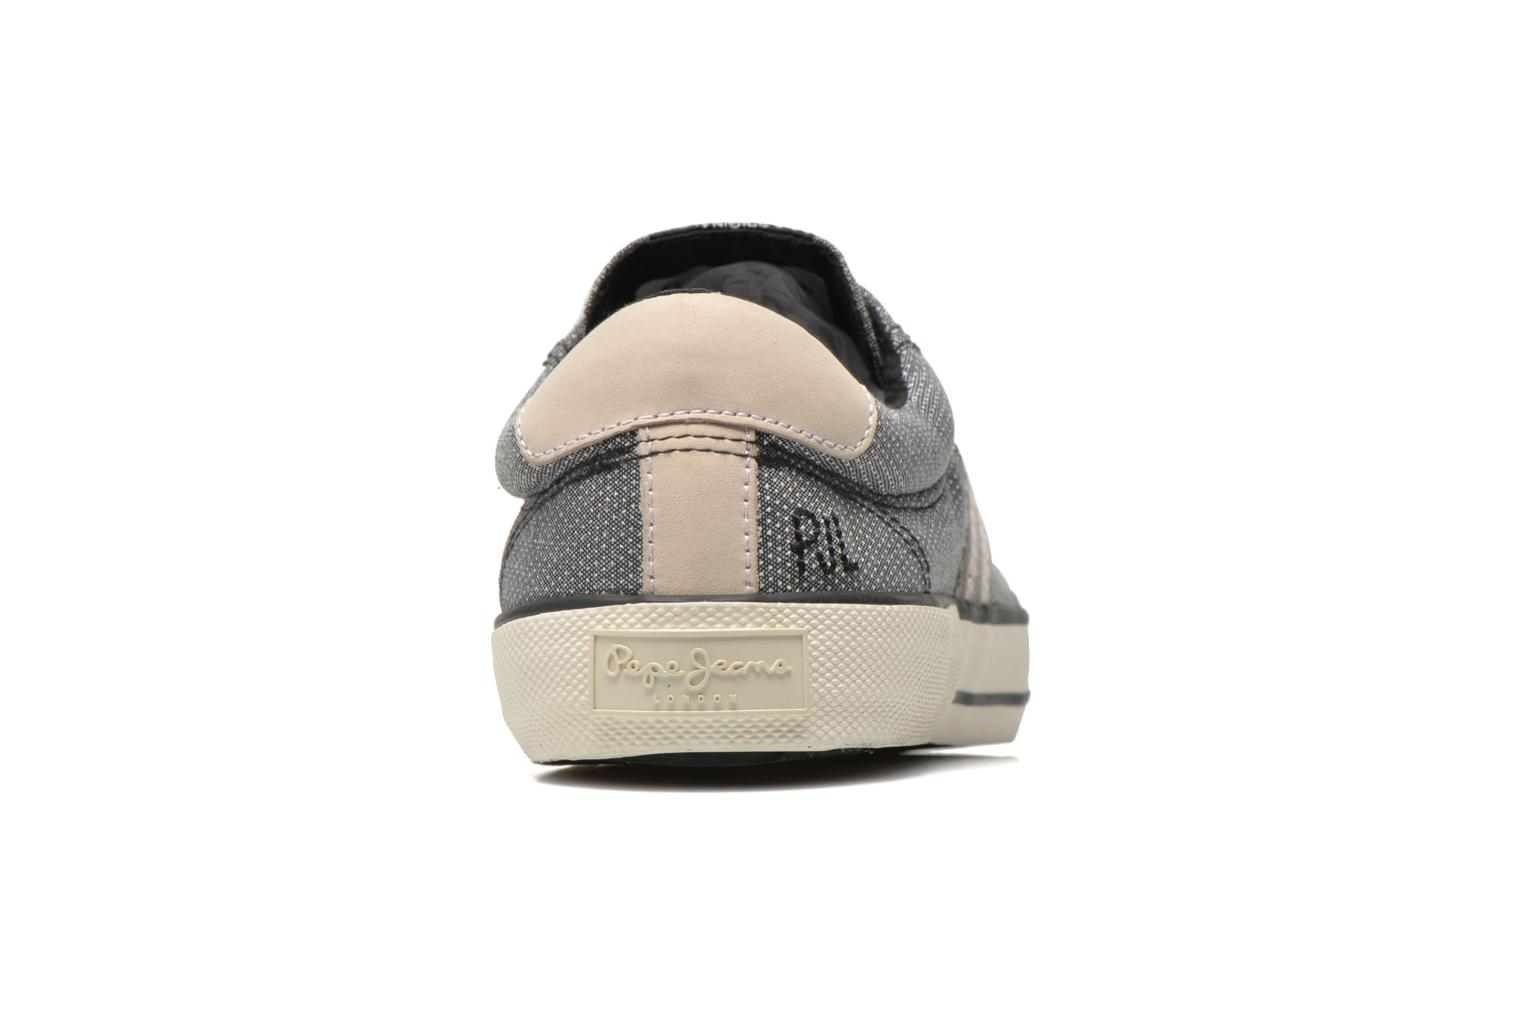 Baskets Pepe jeans Serthi fabric Gris vue droite